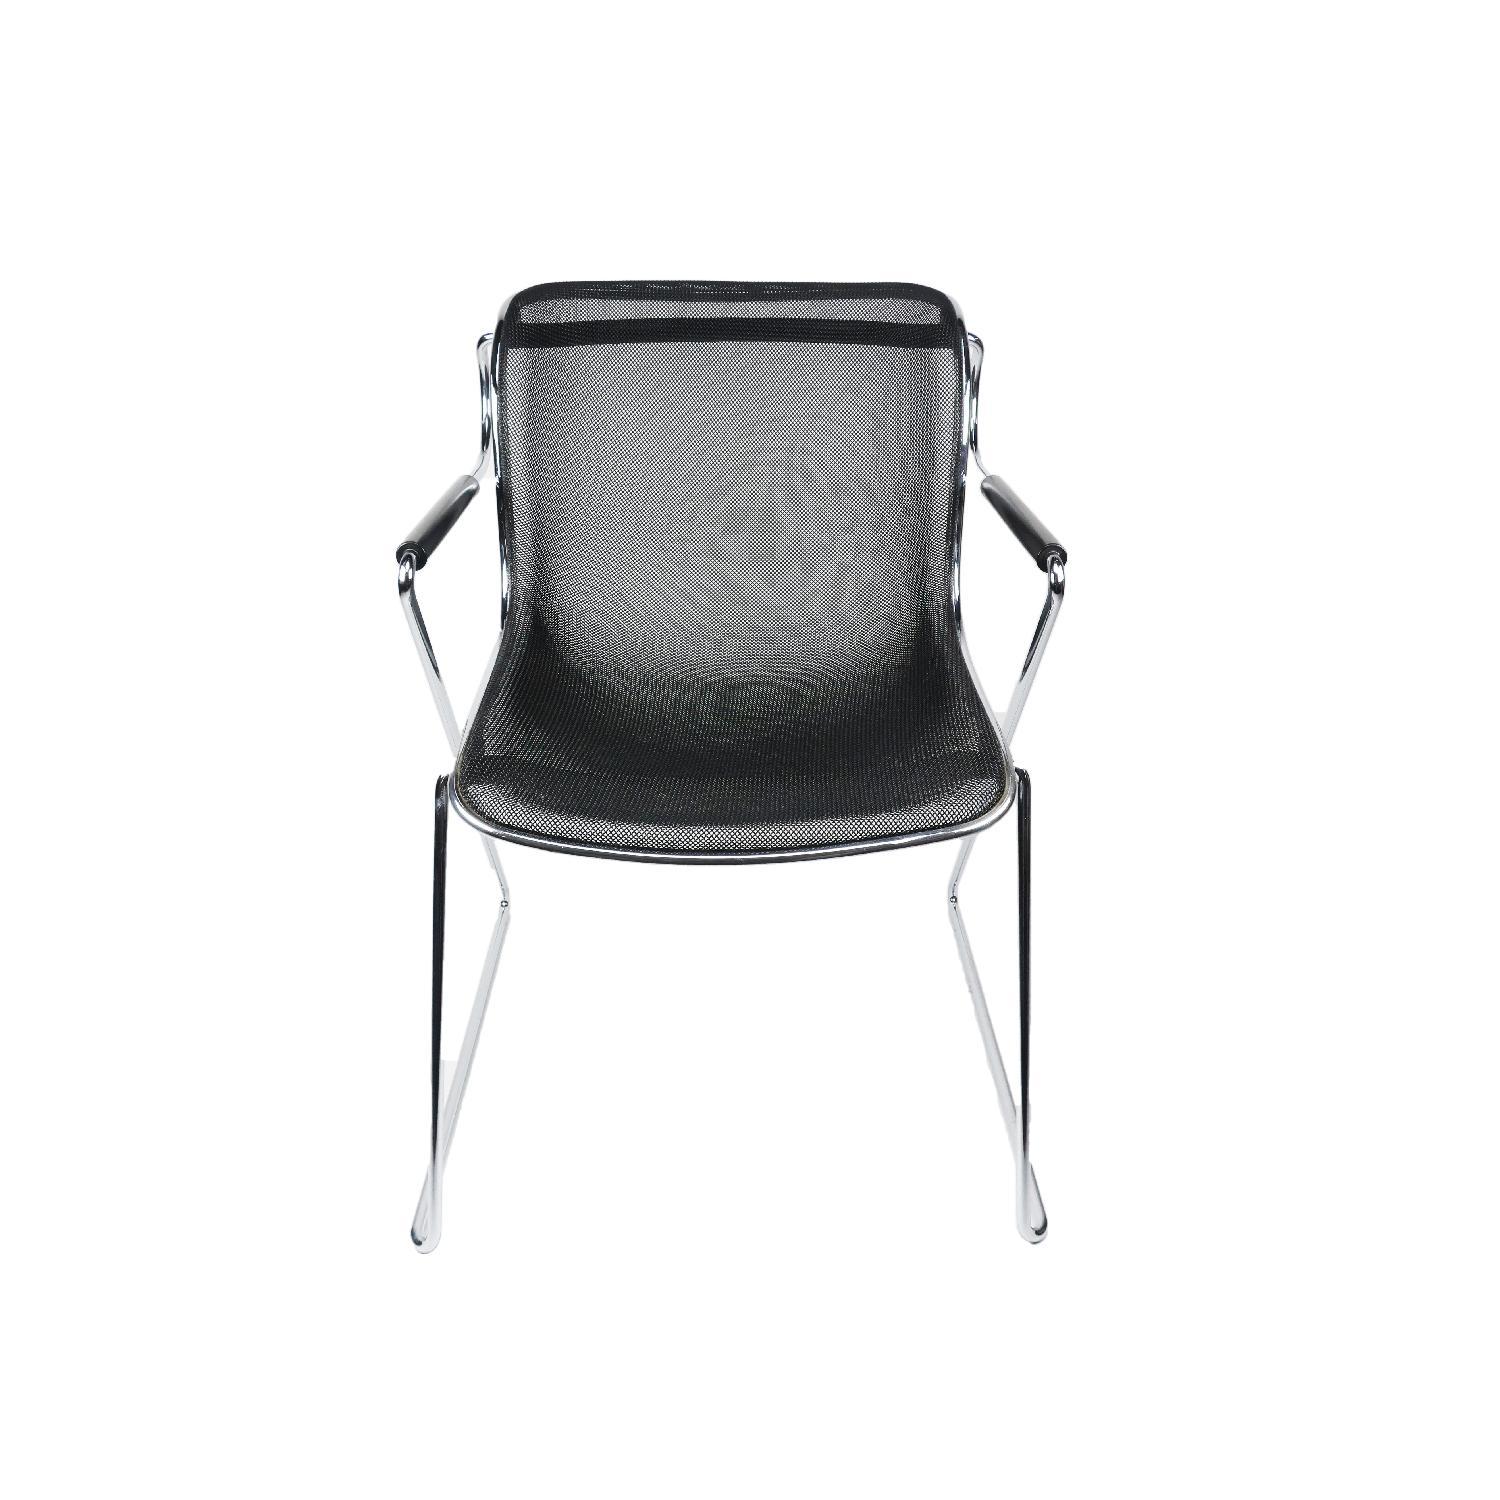 Charles Pollock Chair Charles Pollock Penelope Chair In Chrome And Steel Aptdeco